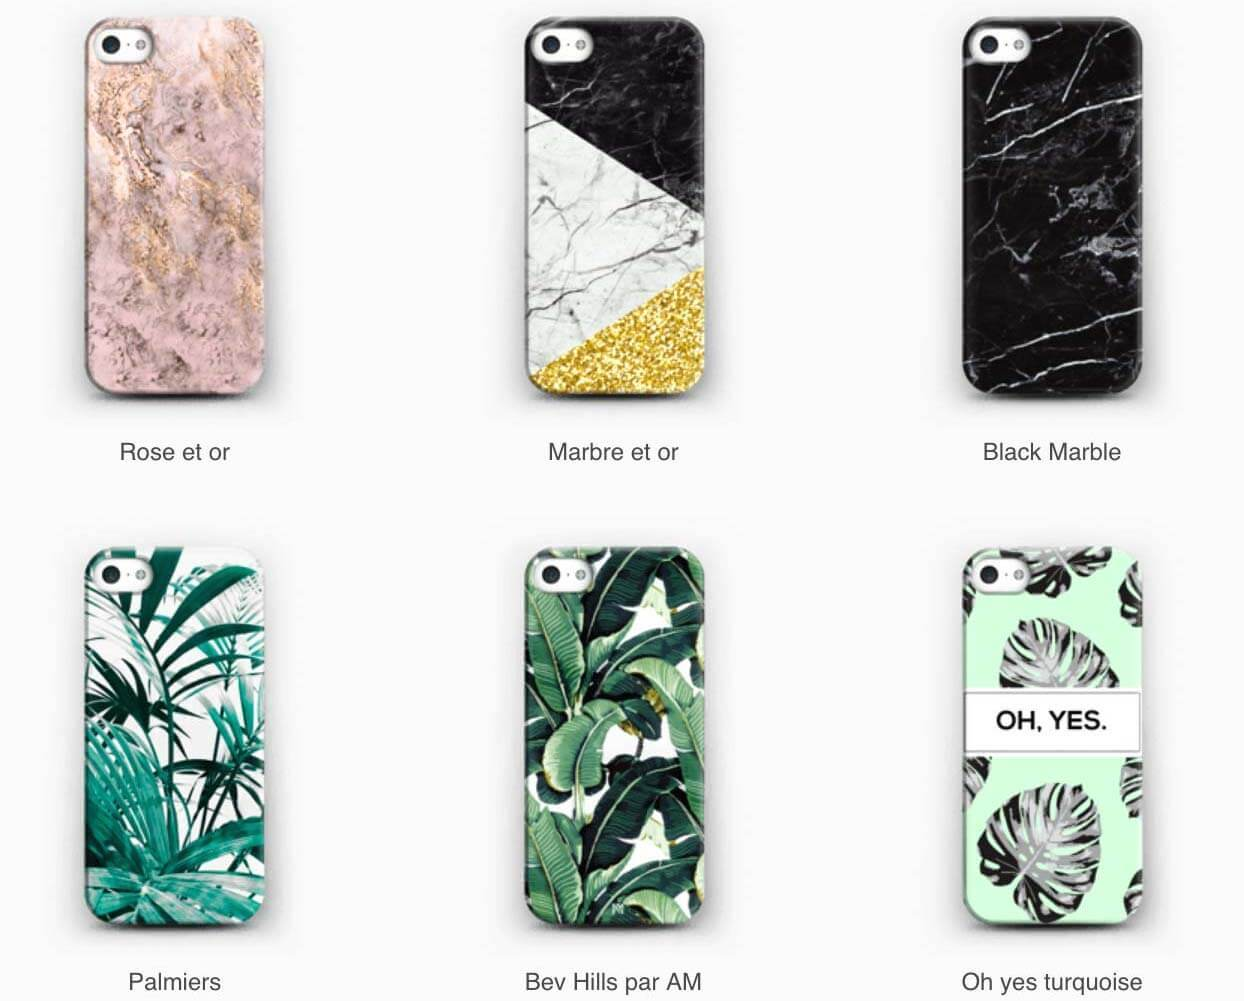 coque-skin-personnalise-caseapp-marbre-tropical-photo-makeupbyazadig-code-promo-kawai